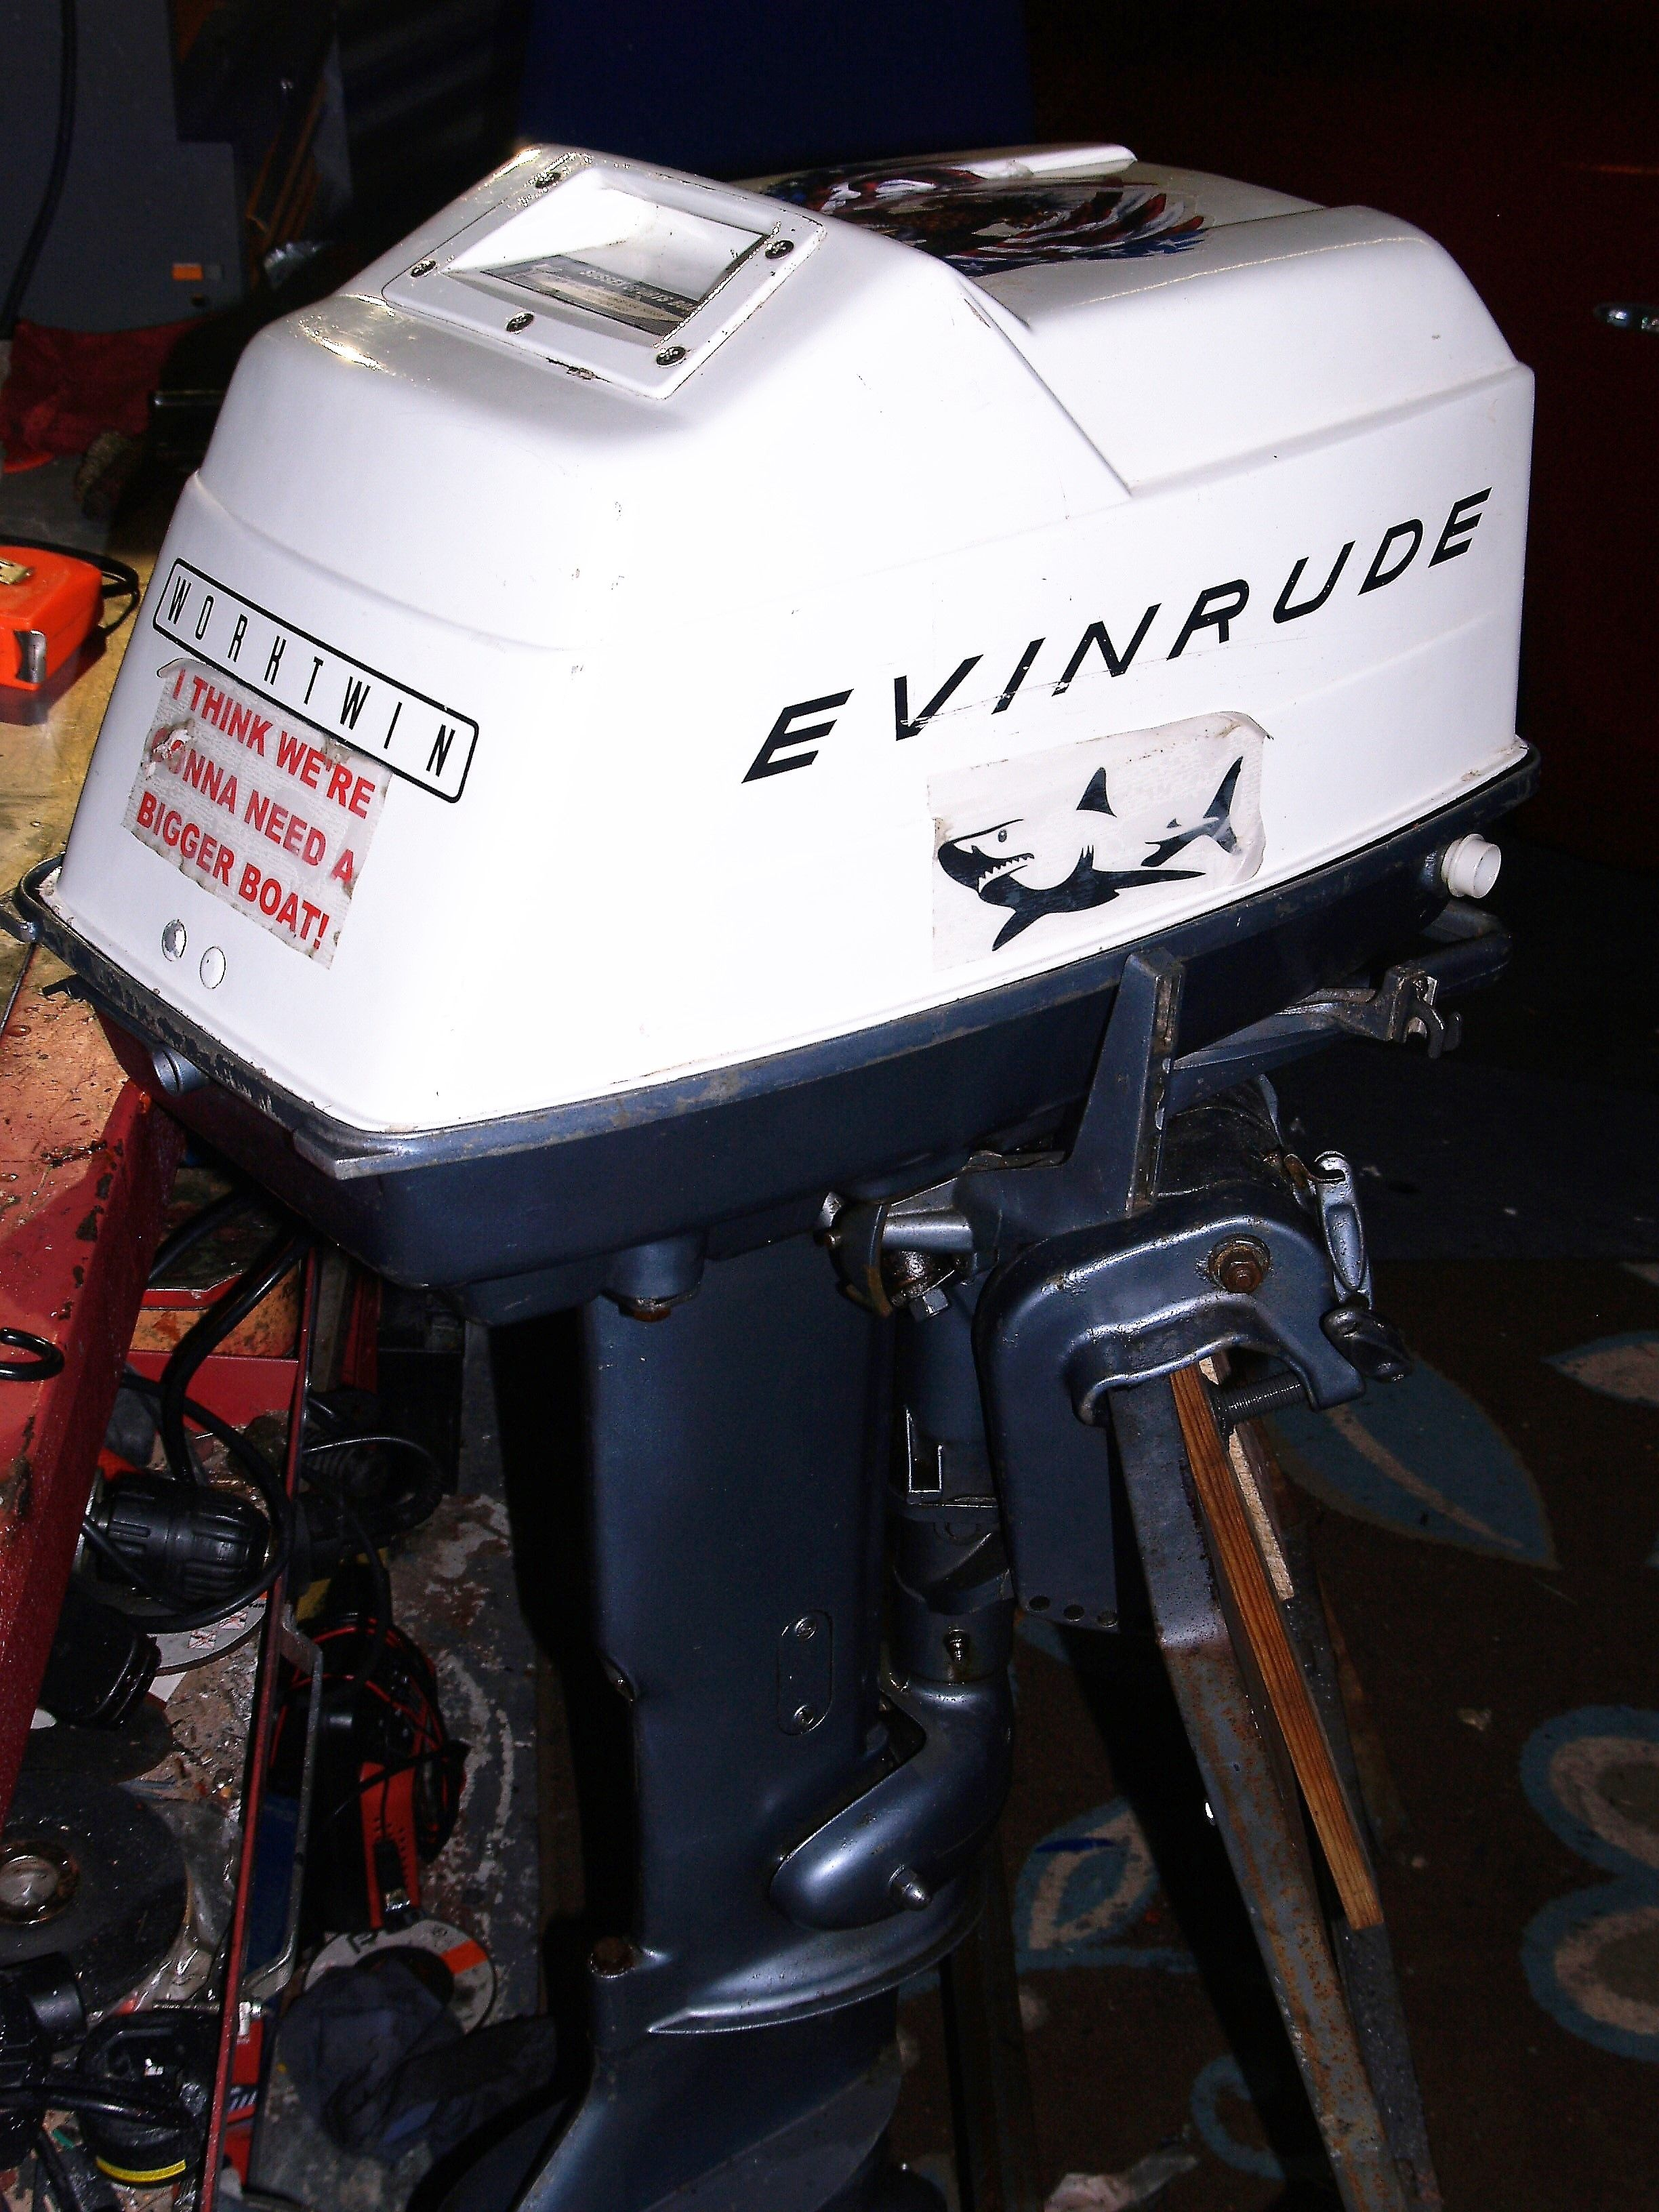 small resolution of its a 15503c 15hp evinrude worktwin year i don t really know anyone know